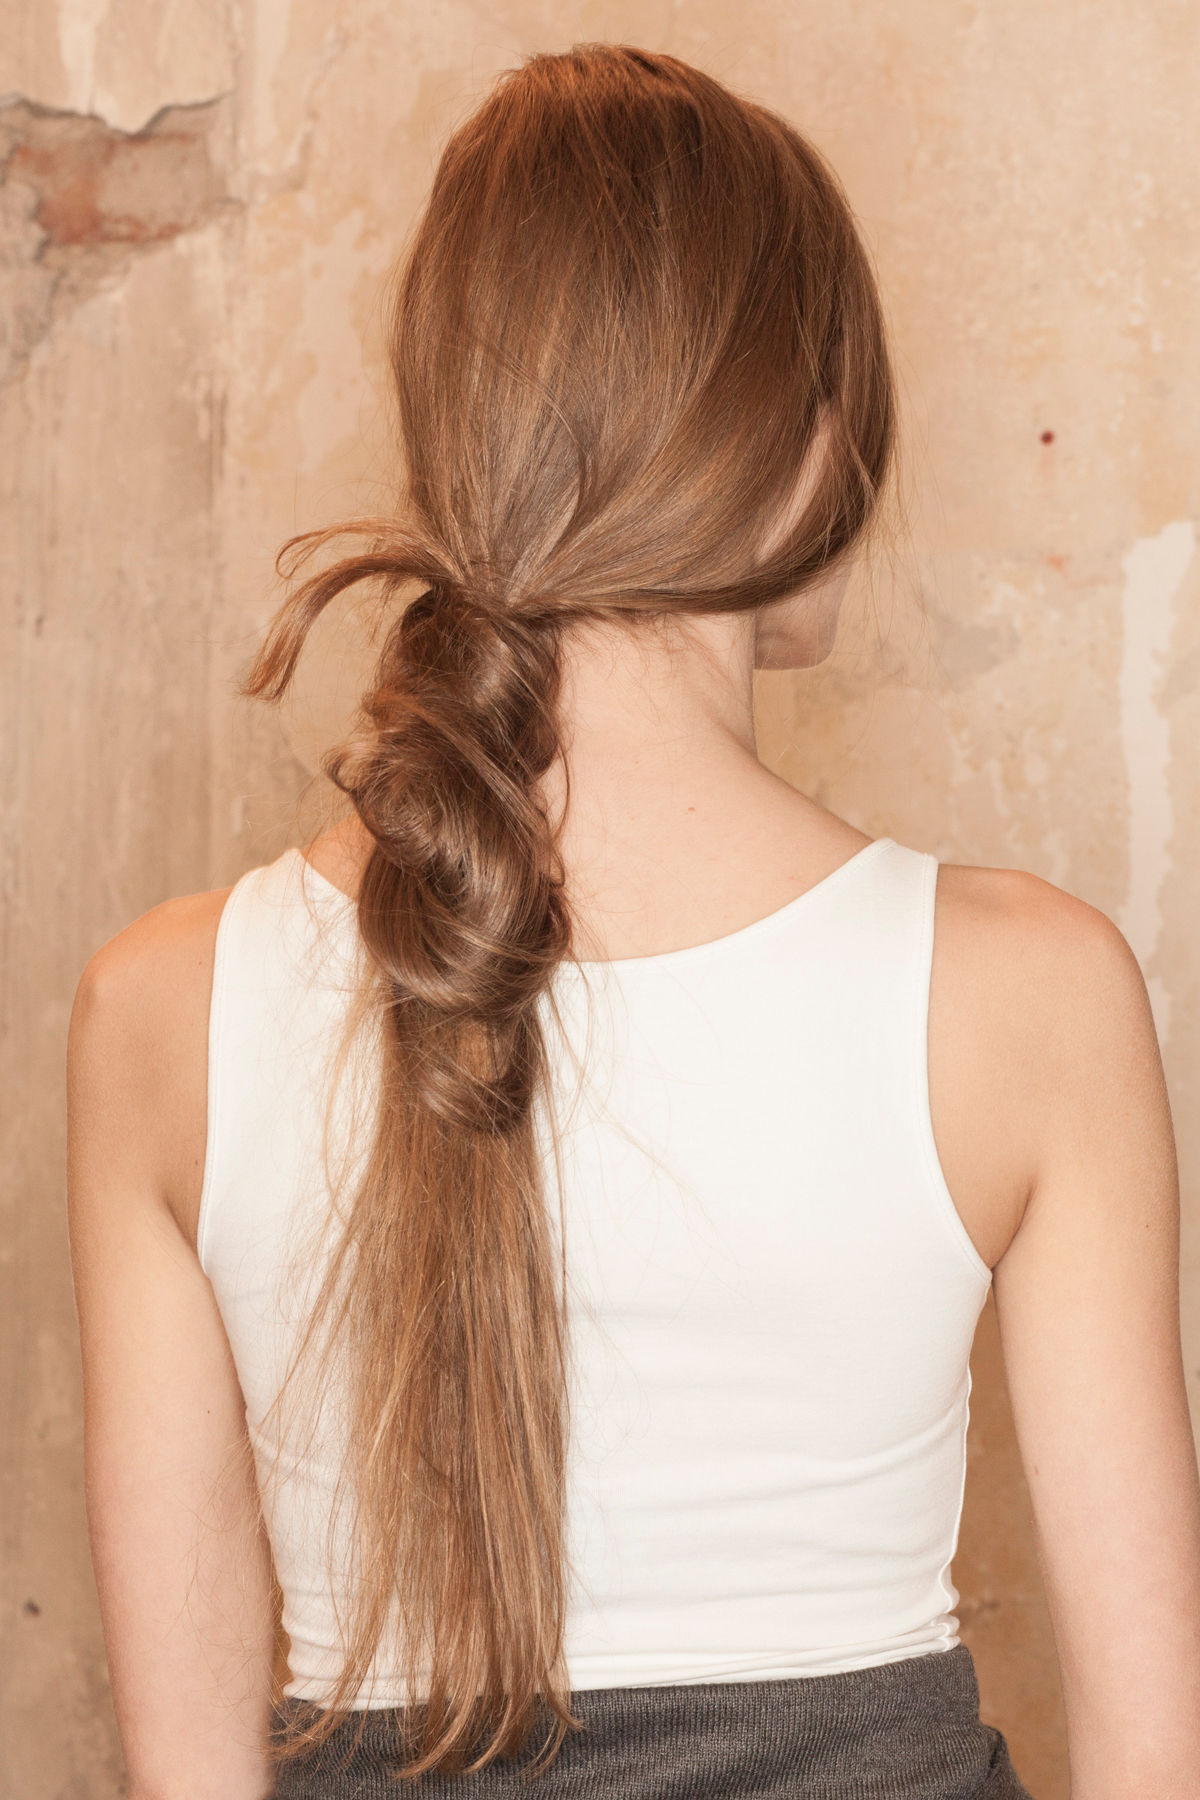 Dealing with Damaged Hair? Avoid This Major Shampoo Mistake